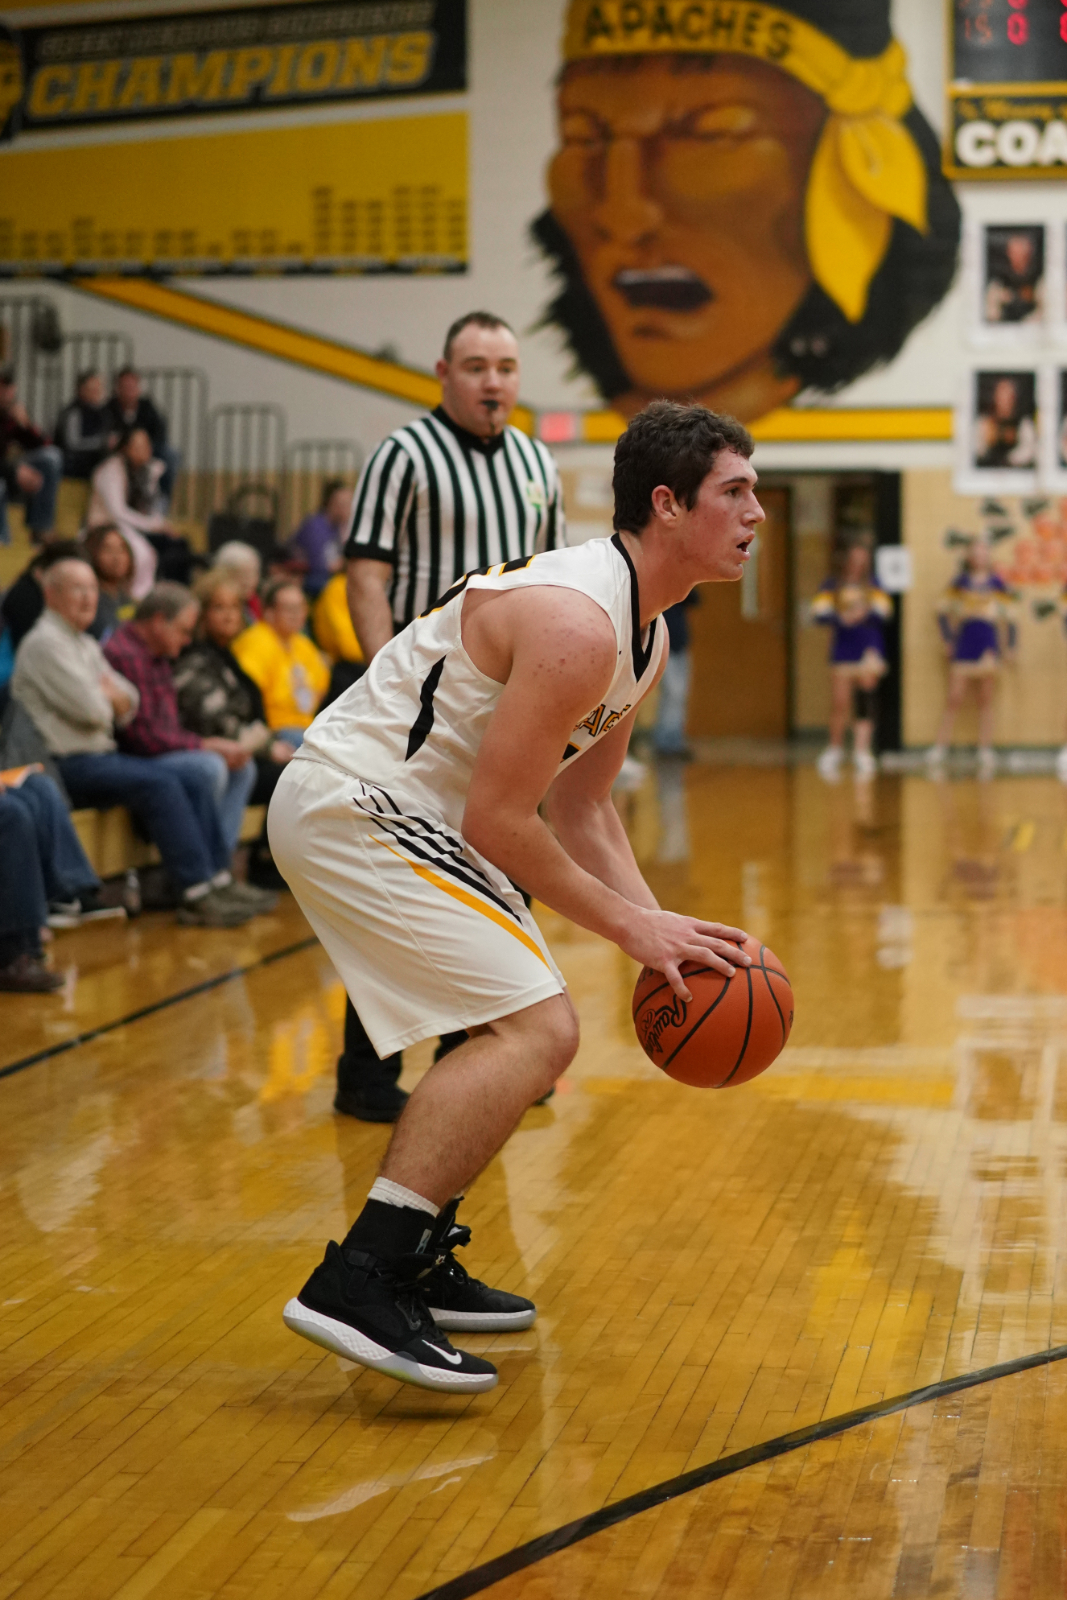 Boys basketball sectional game scheduled for Tuesday